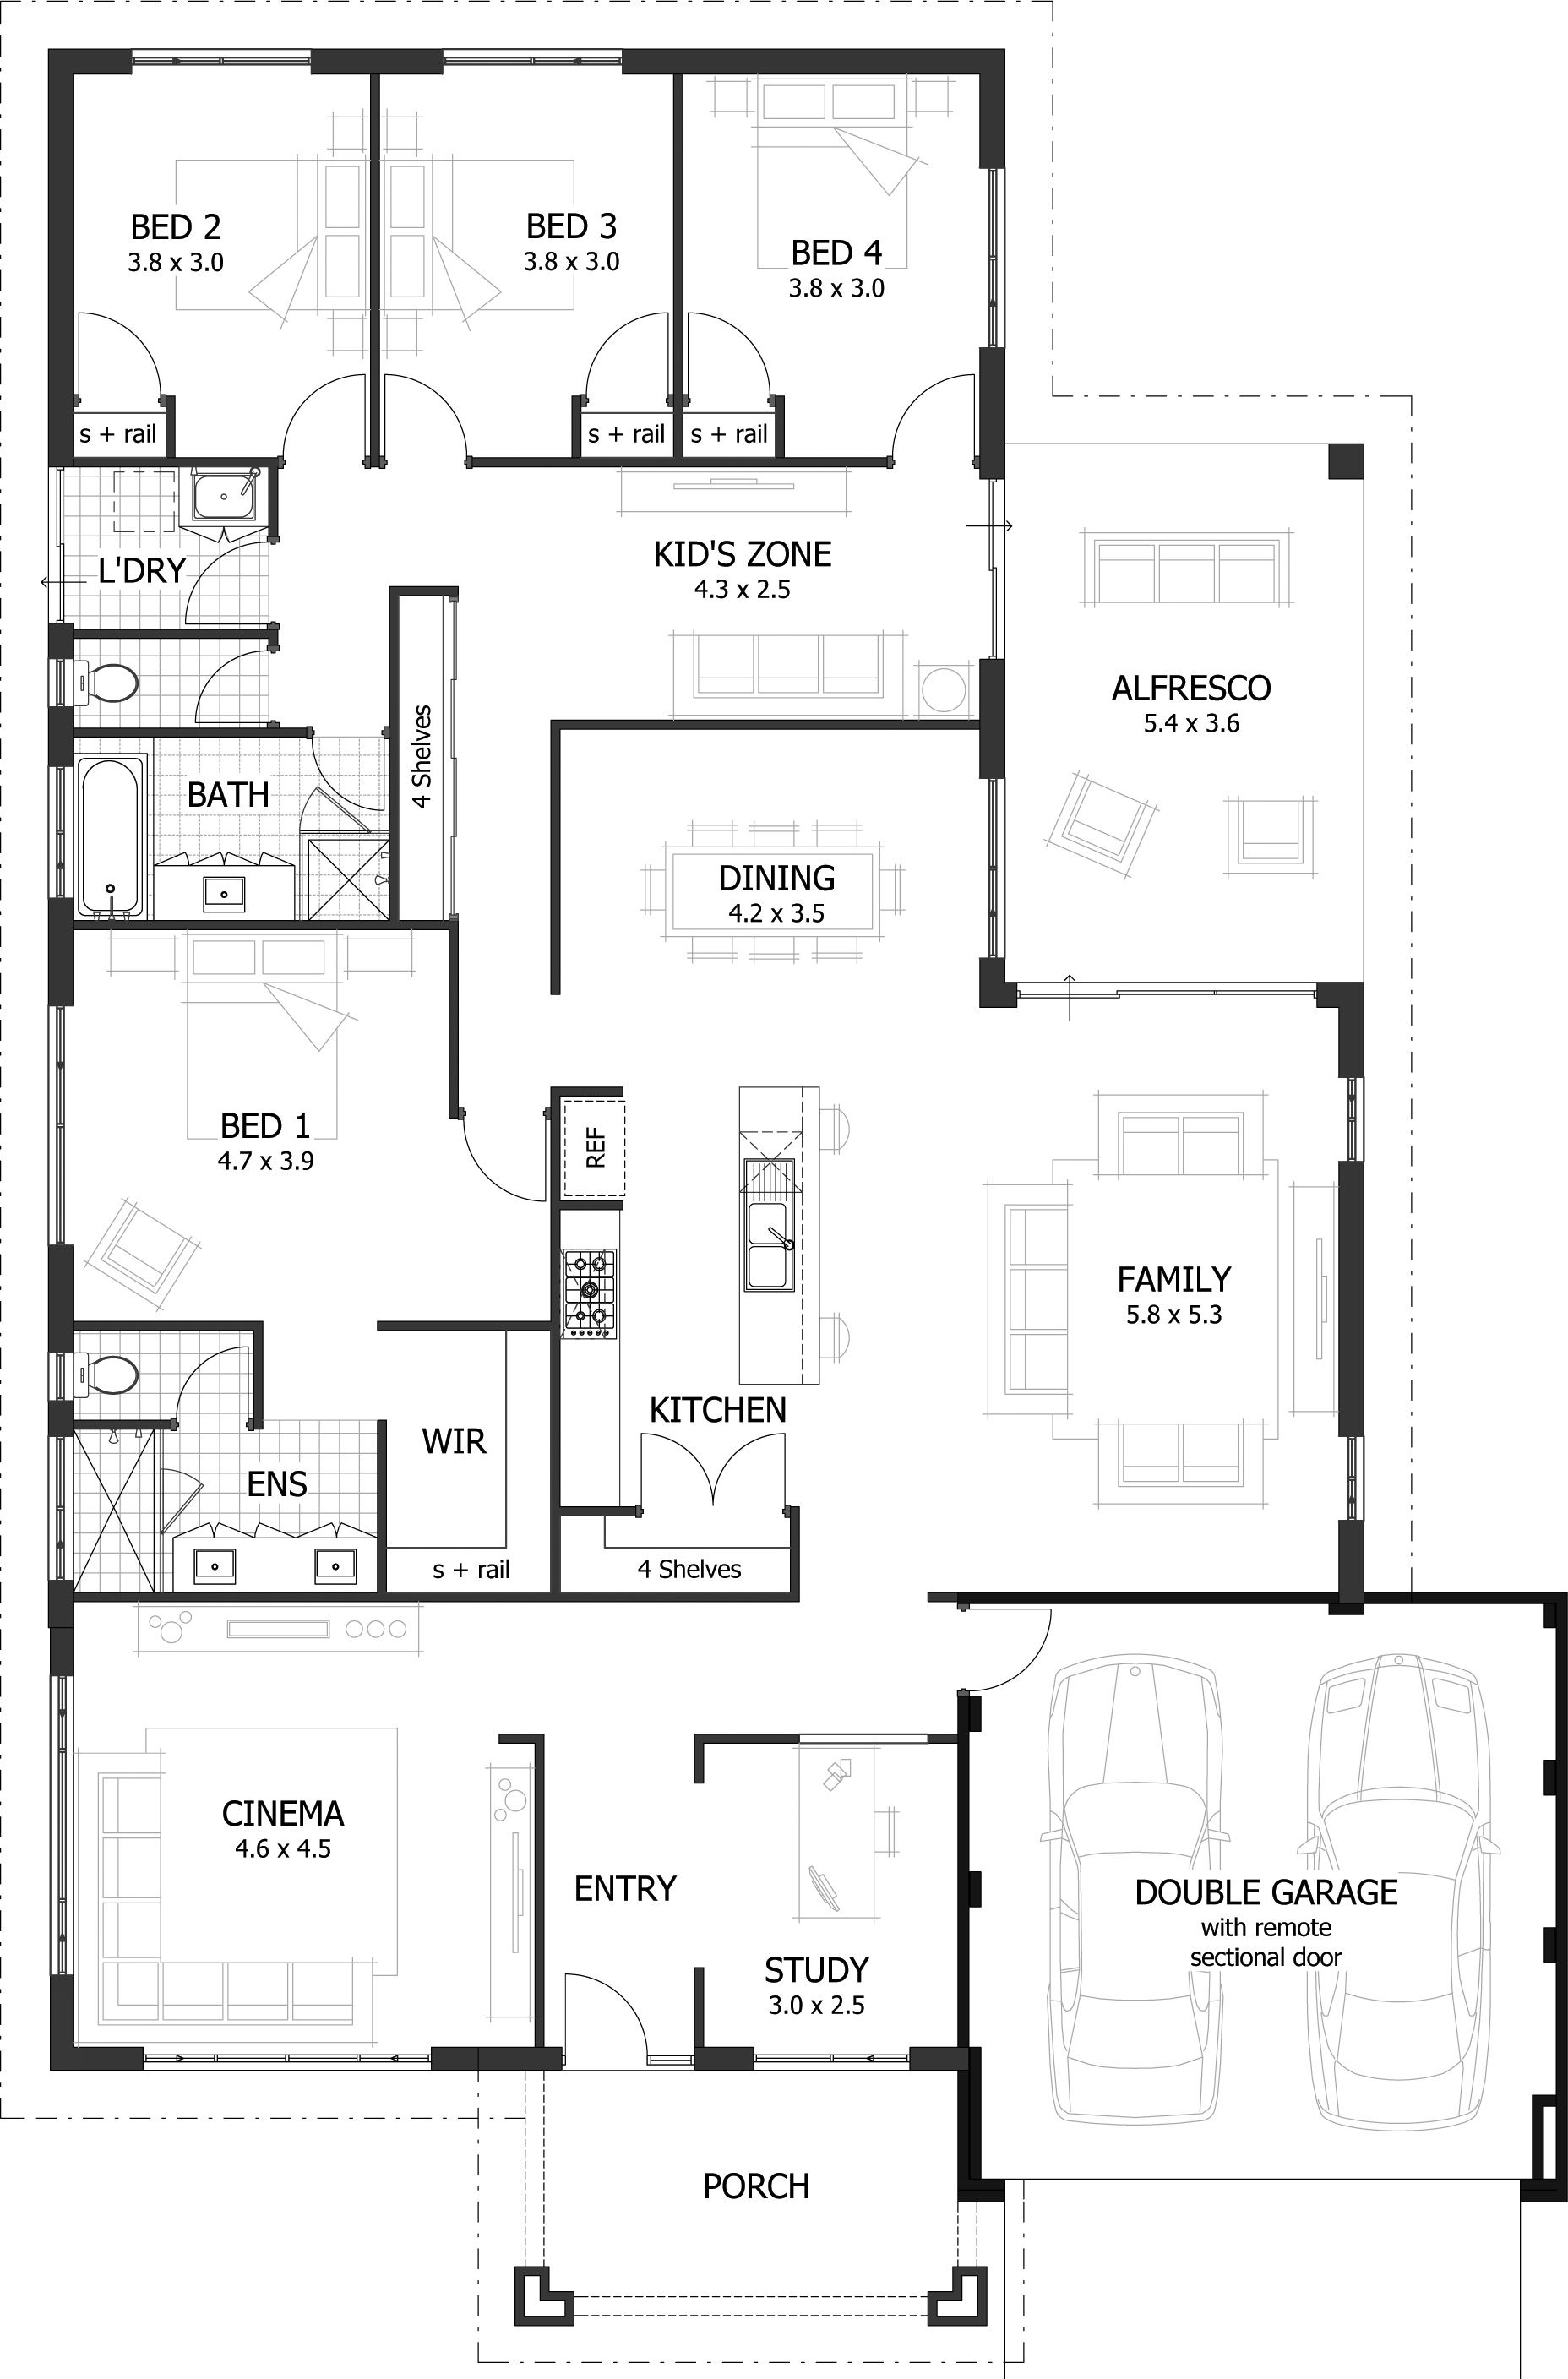 4 Bedroom House Plans & Home Designs 4 bedroom house